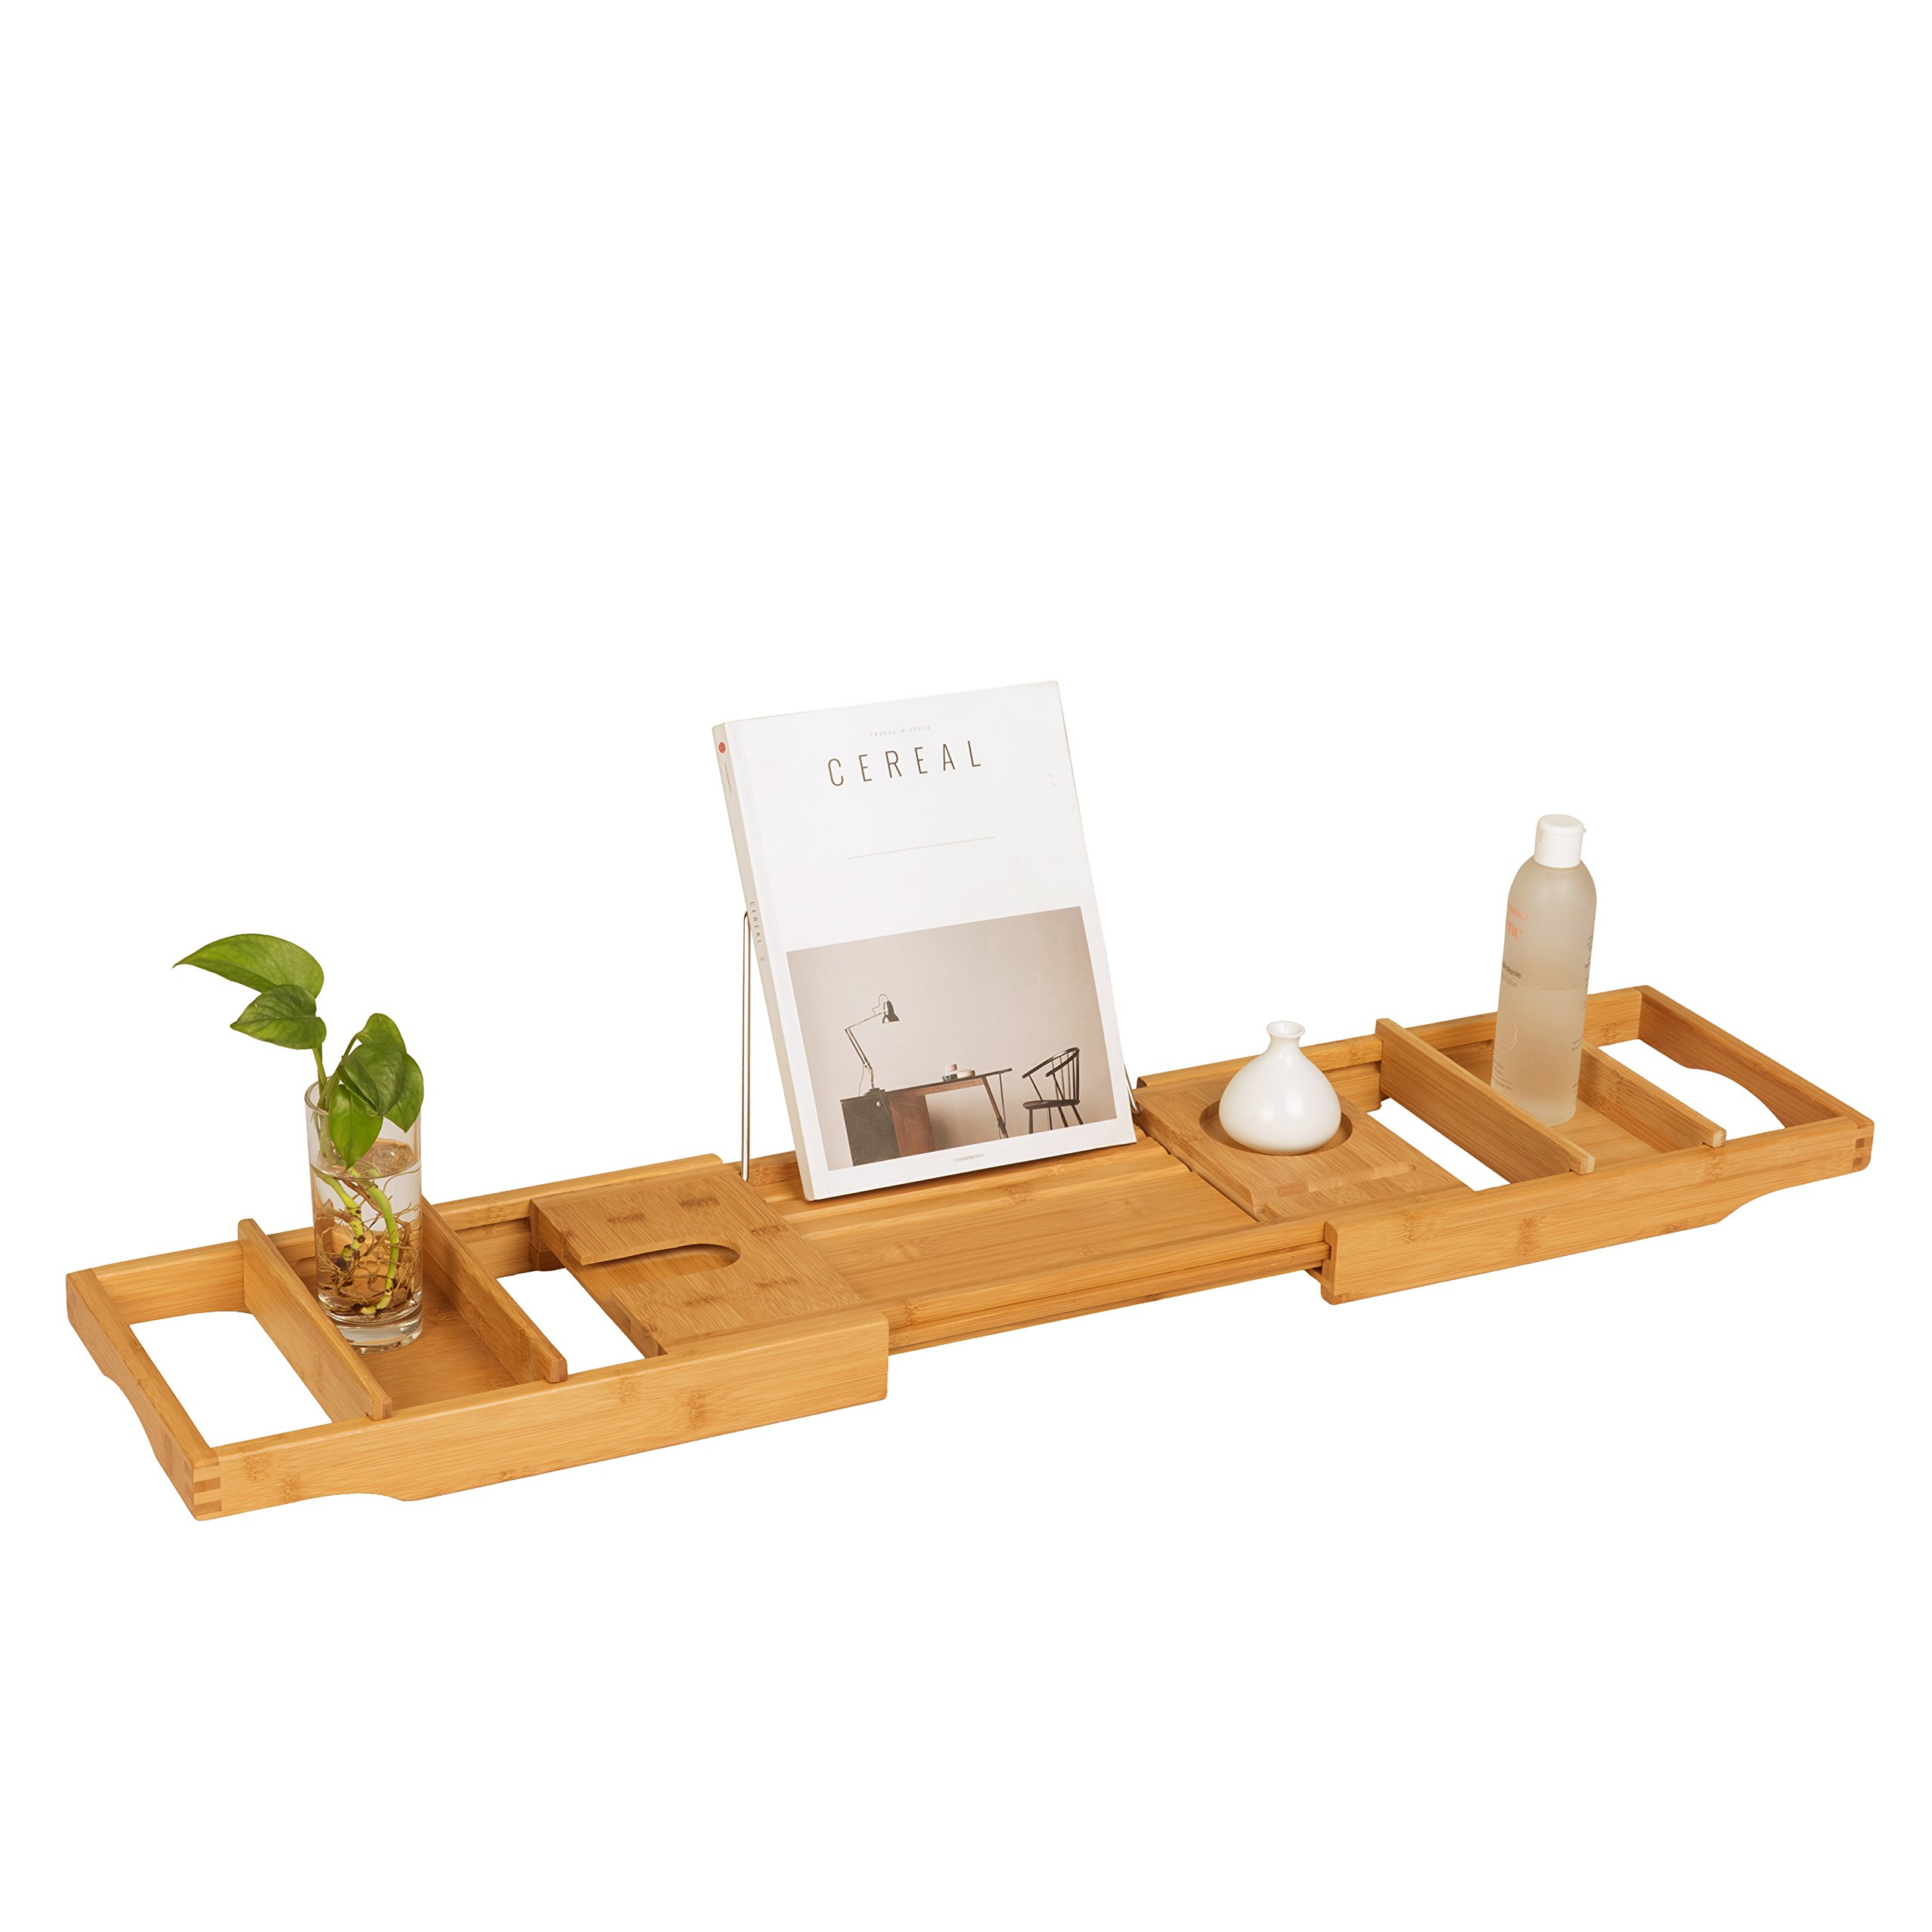 SDADI Extendable Bamboo Bathtub Caddy With 2 Towel Tray 1.0